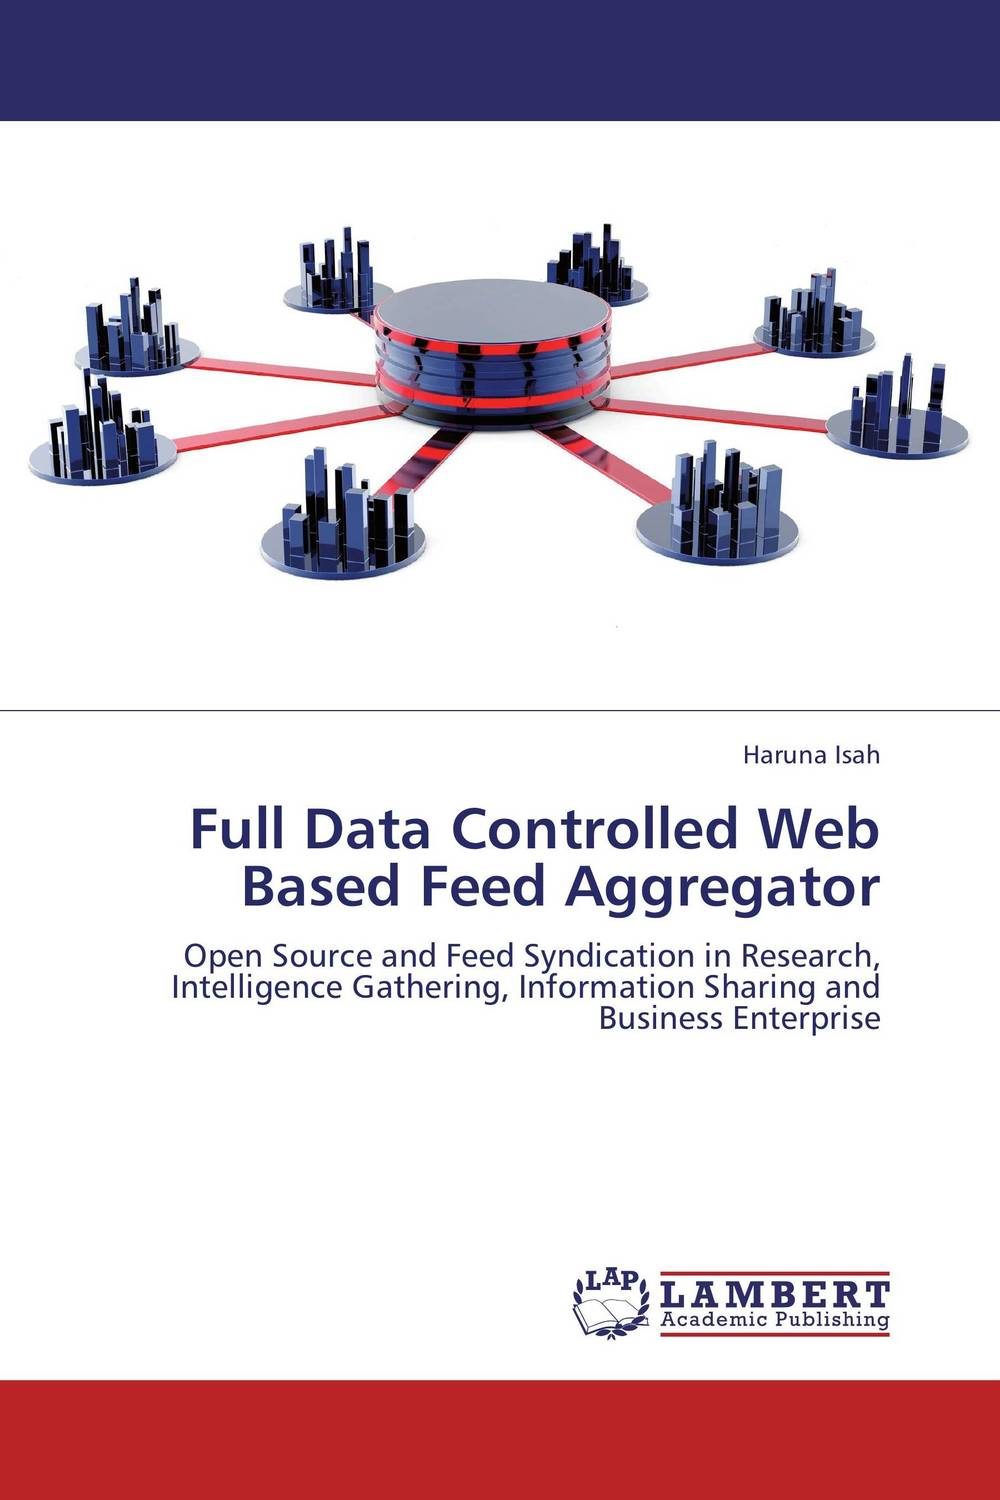 Full Data Controlled Web Based Feed Aggregator